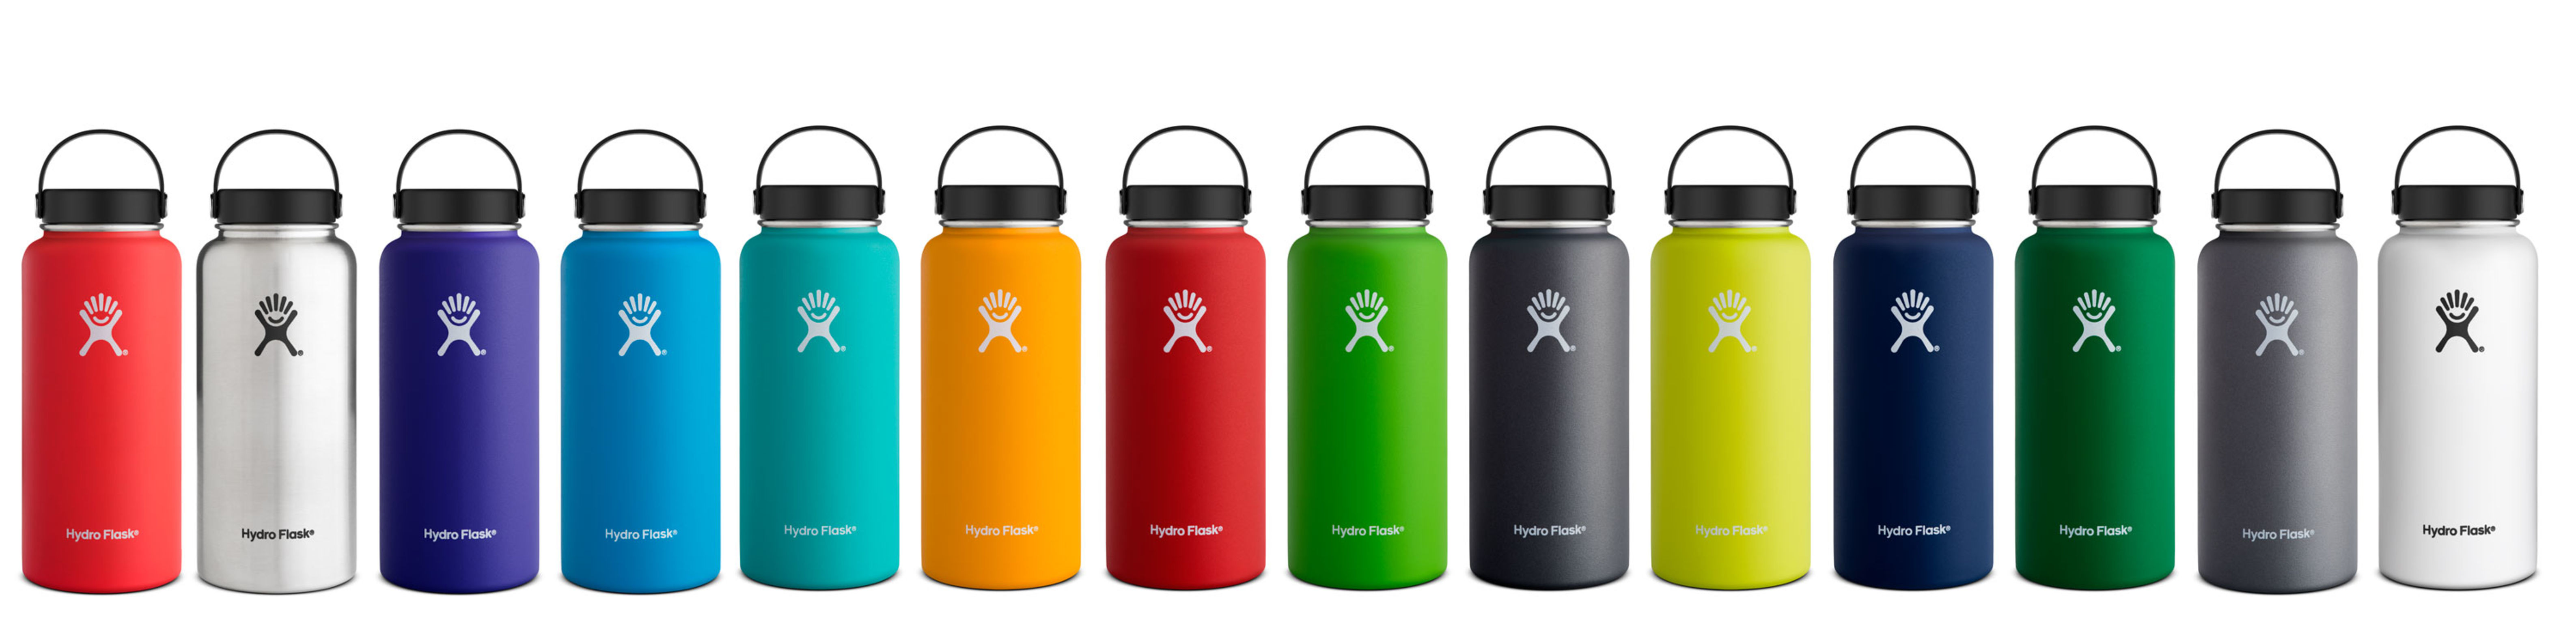 hydro flask 32 oz bottle entry if world design guide